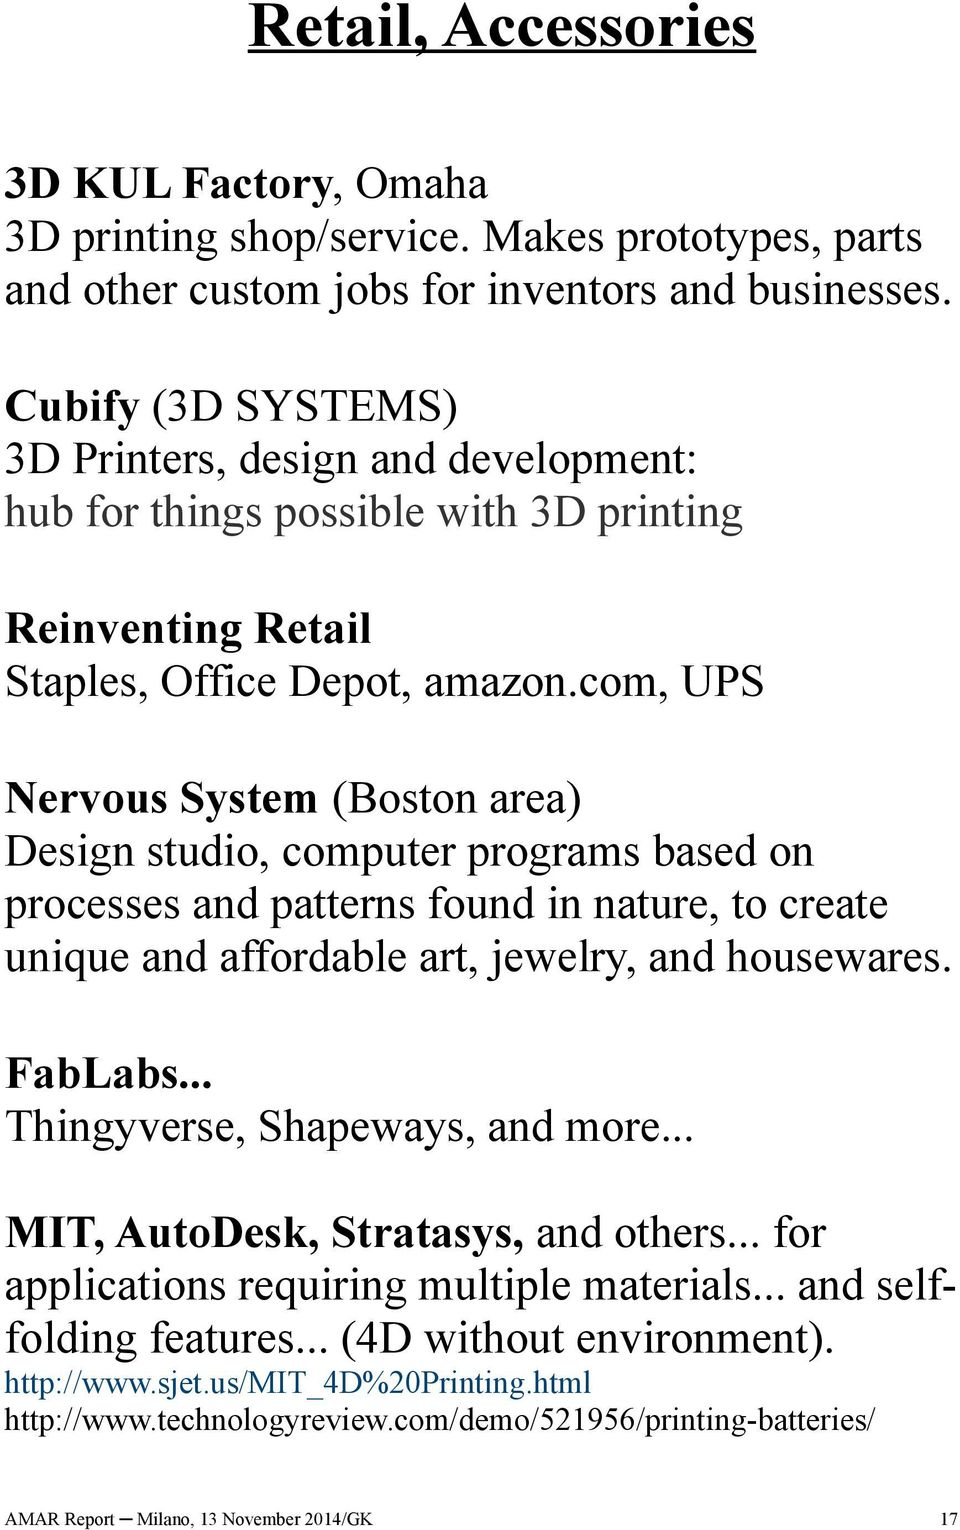 com, UPS Nervous System (Boston area) Design studio, computer programs based on processes and patterns found in nature, to create unique and affordable art, jewelry, and housewares. FabLabs.